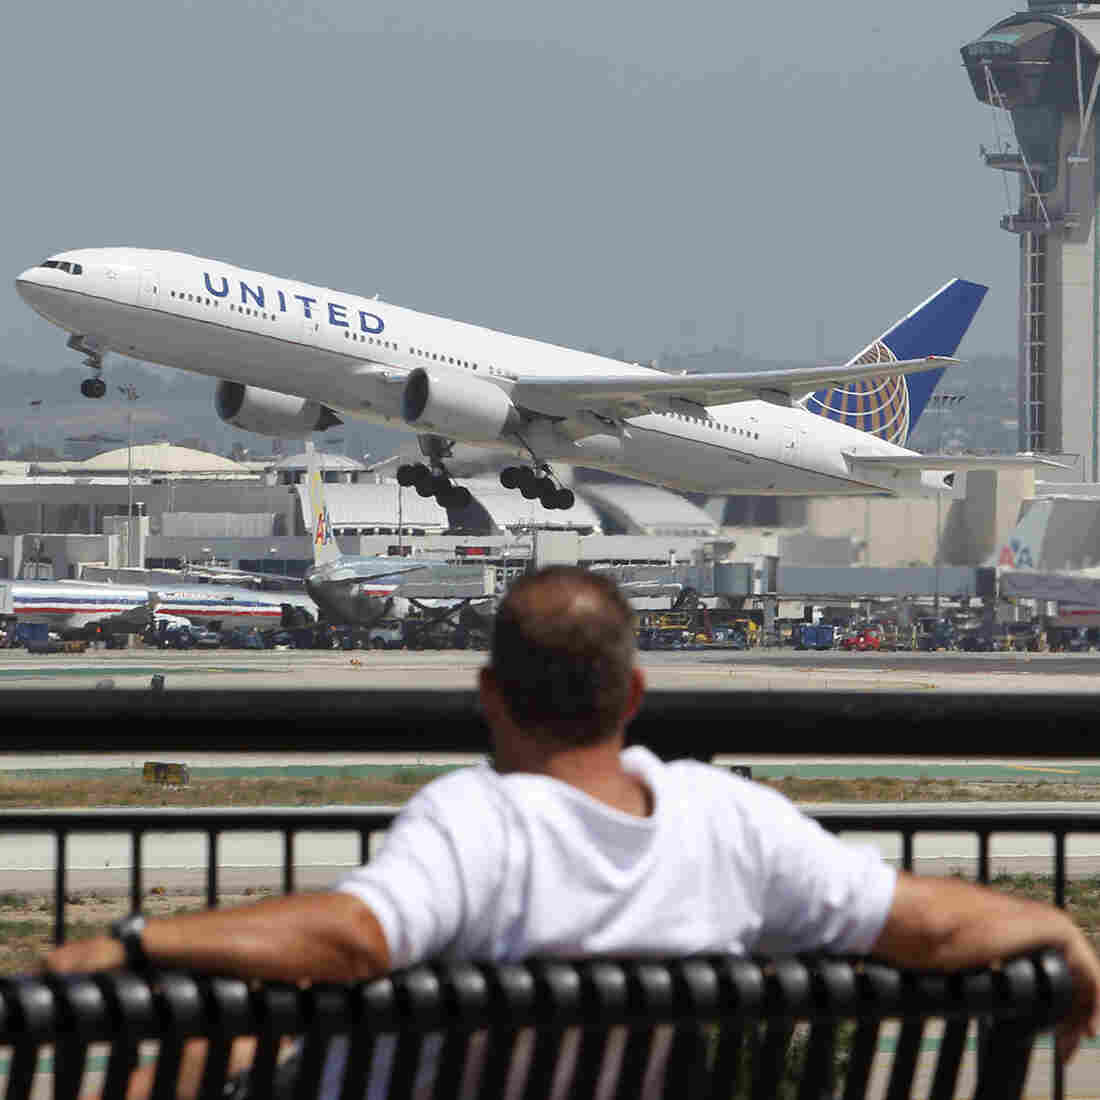 More passengers are expected to fly on U.S. airlines this summer, an industry group said Thursday.